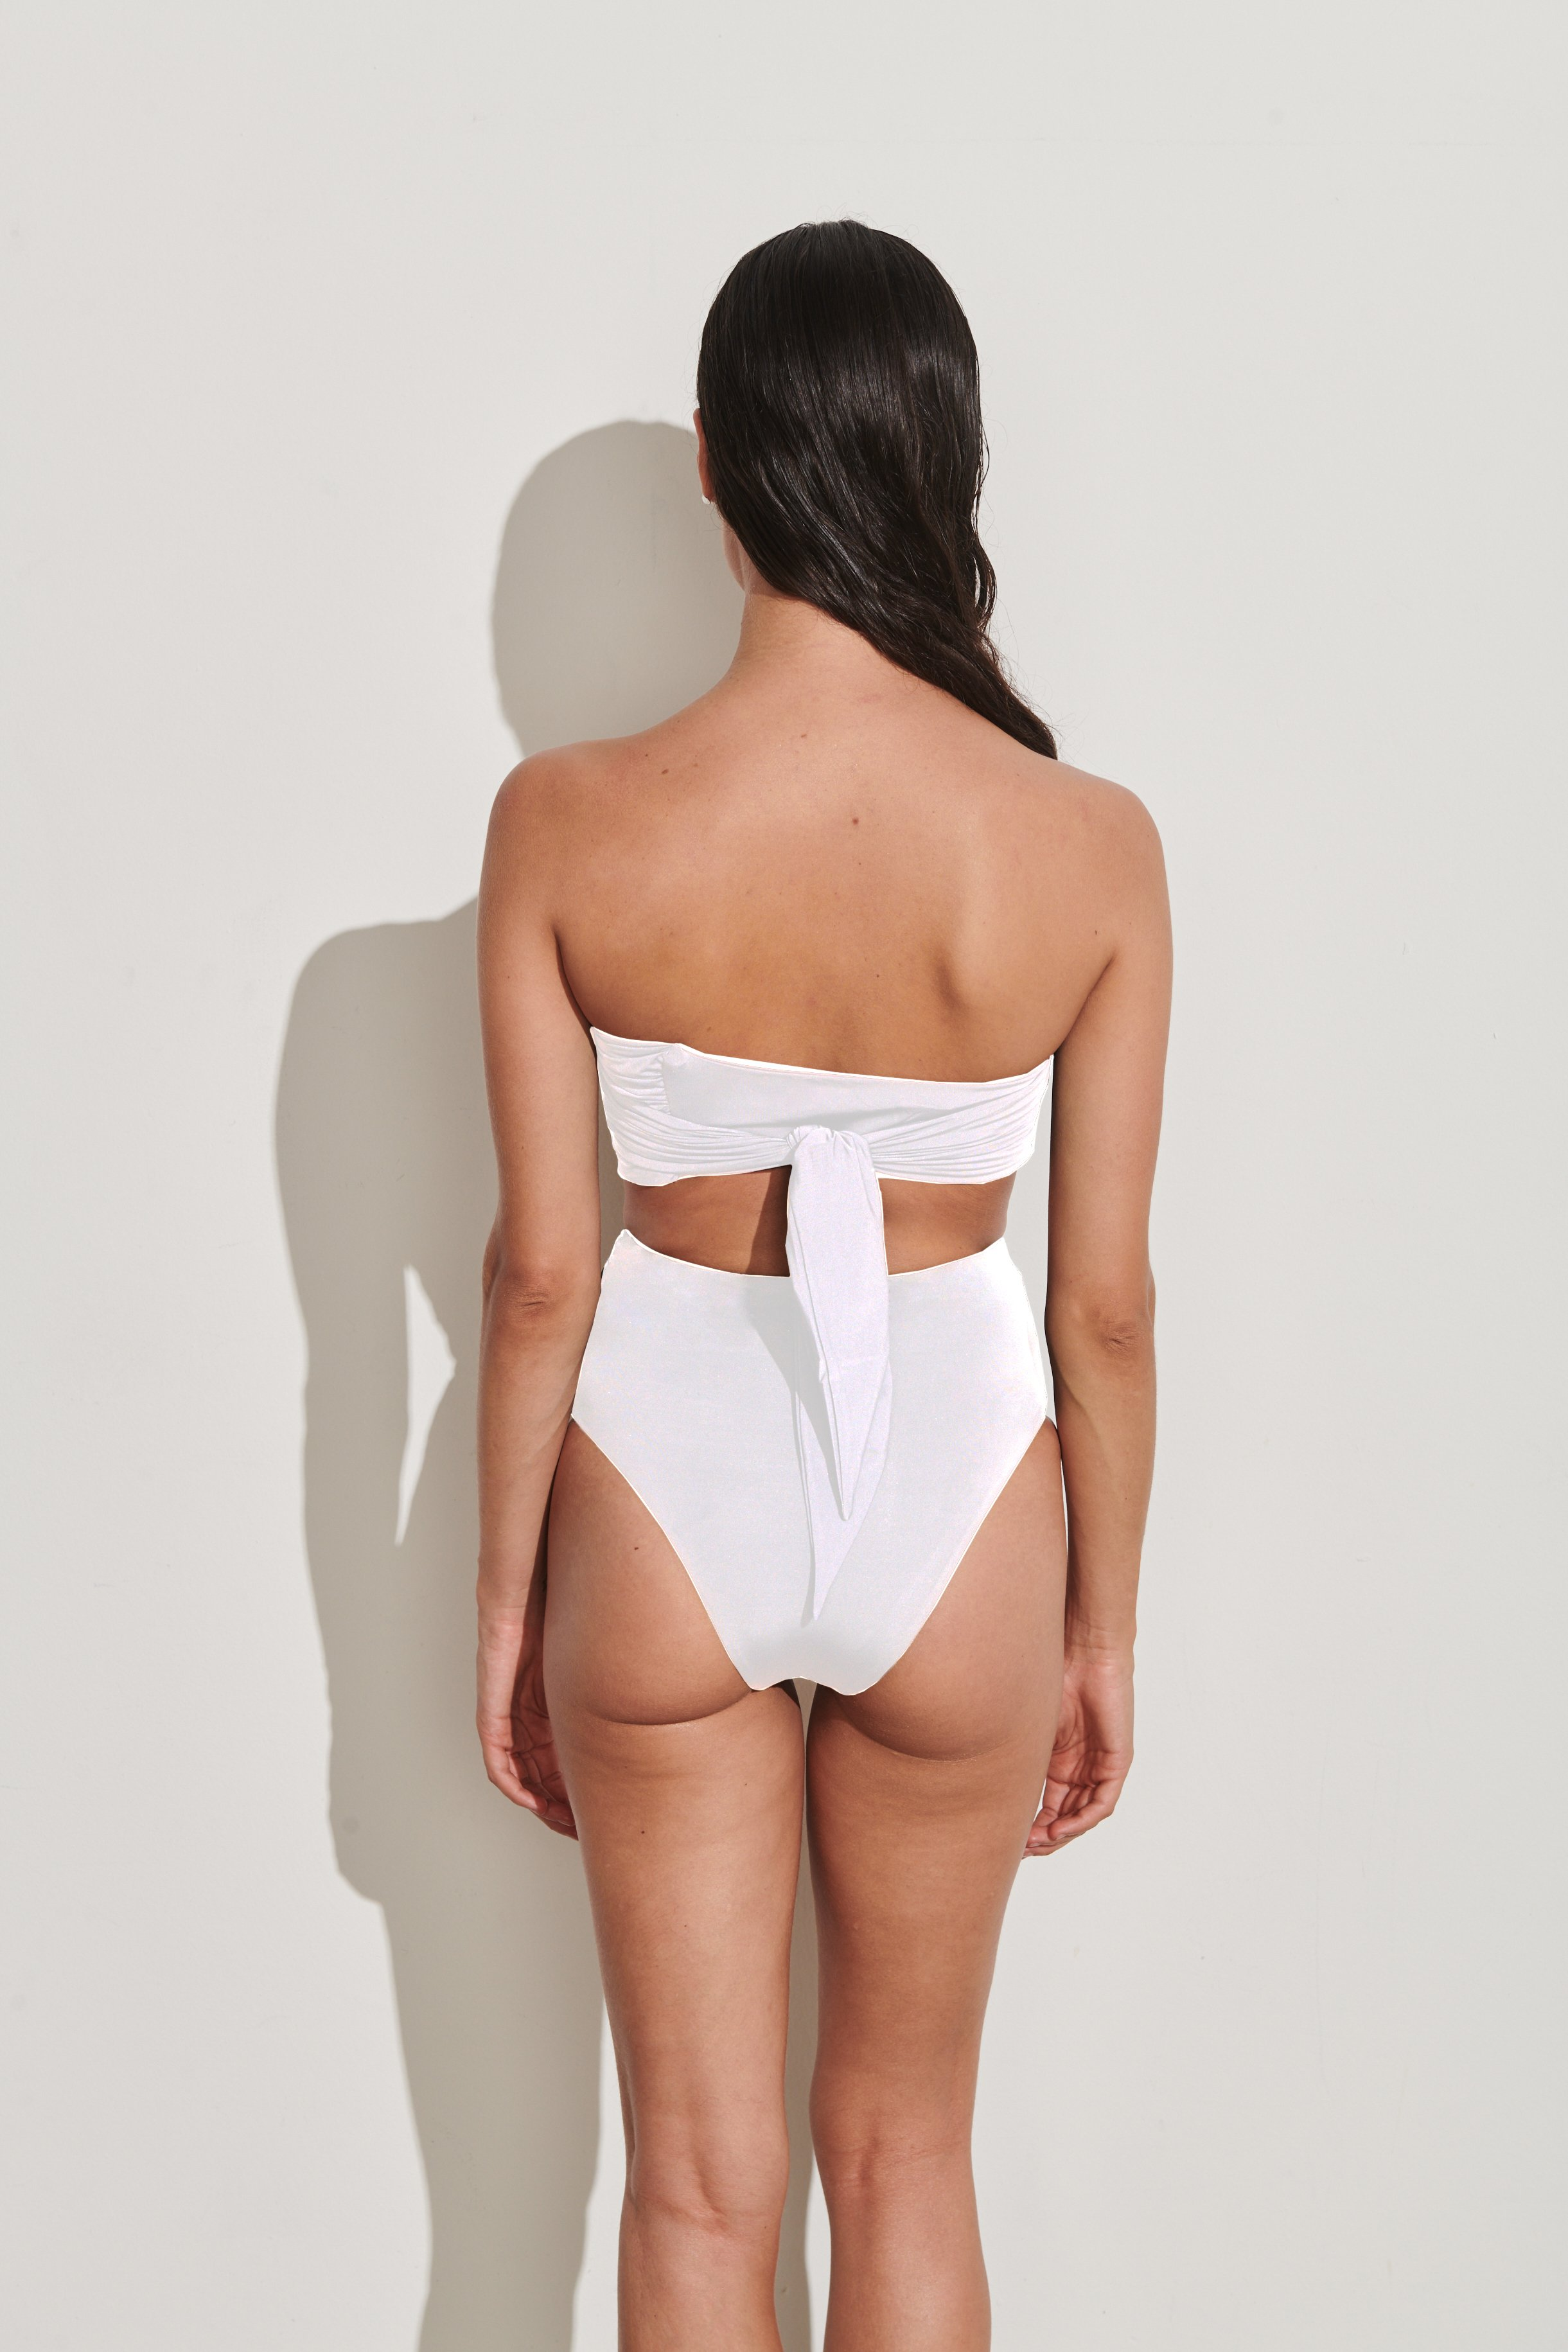 Biquíni Gallipoli Branco | Gallipoli Bikini White